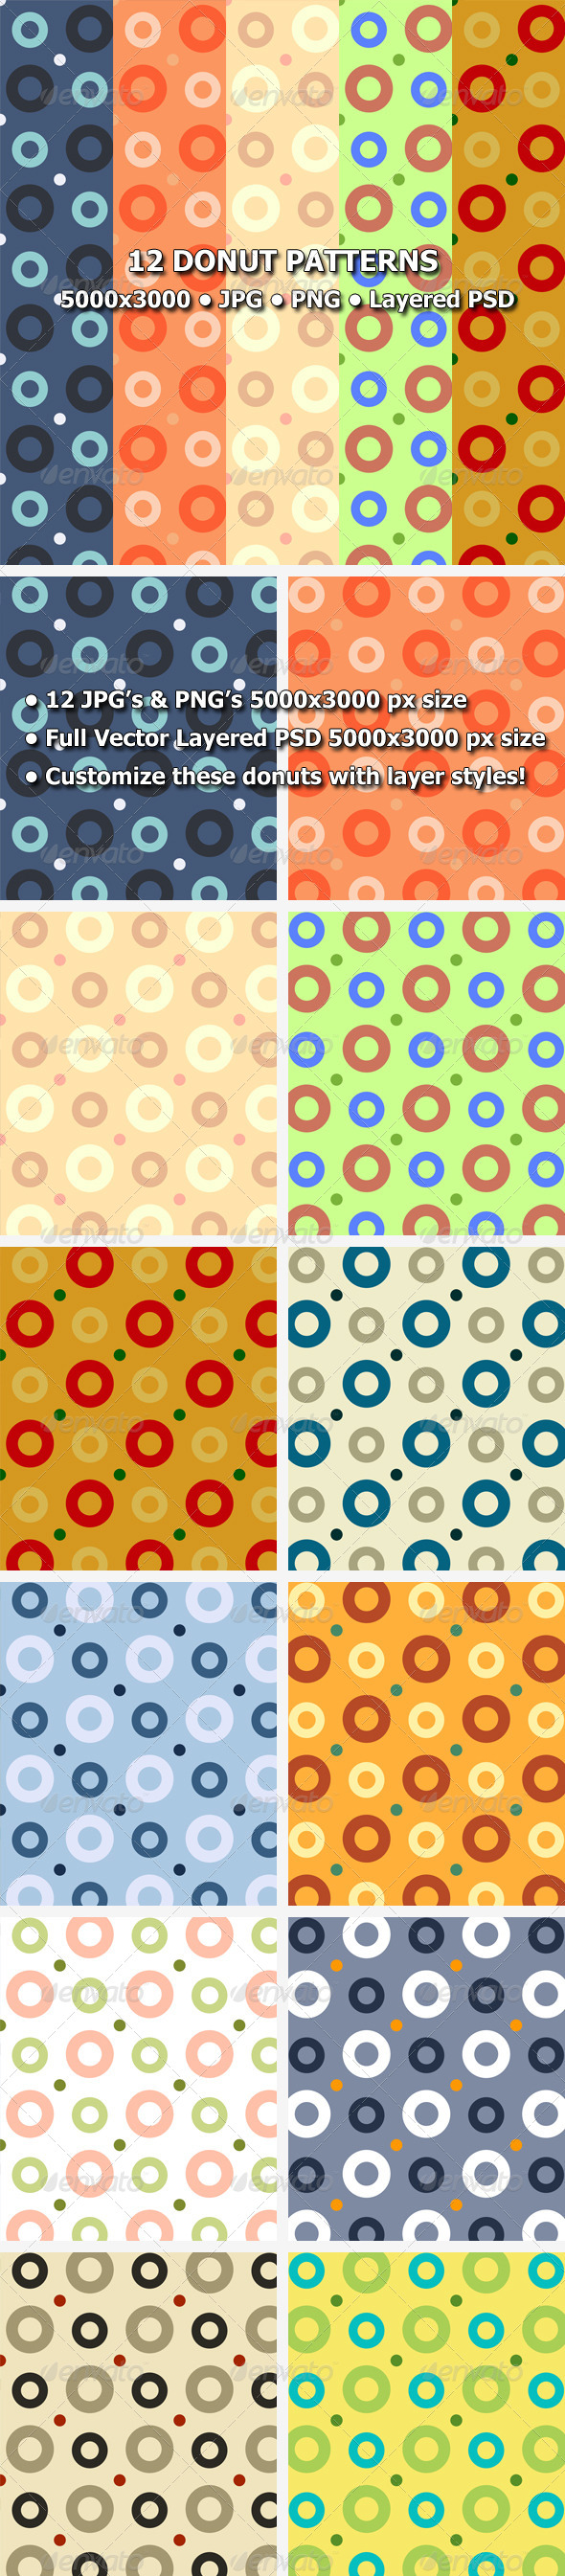 GraphicRiver 12 Donut Patterns 8473066